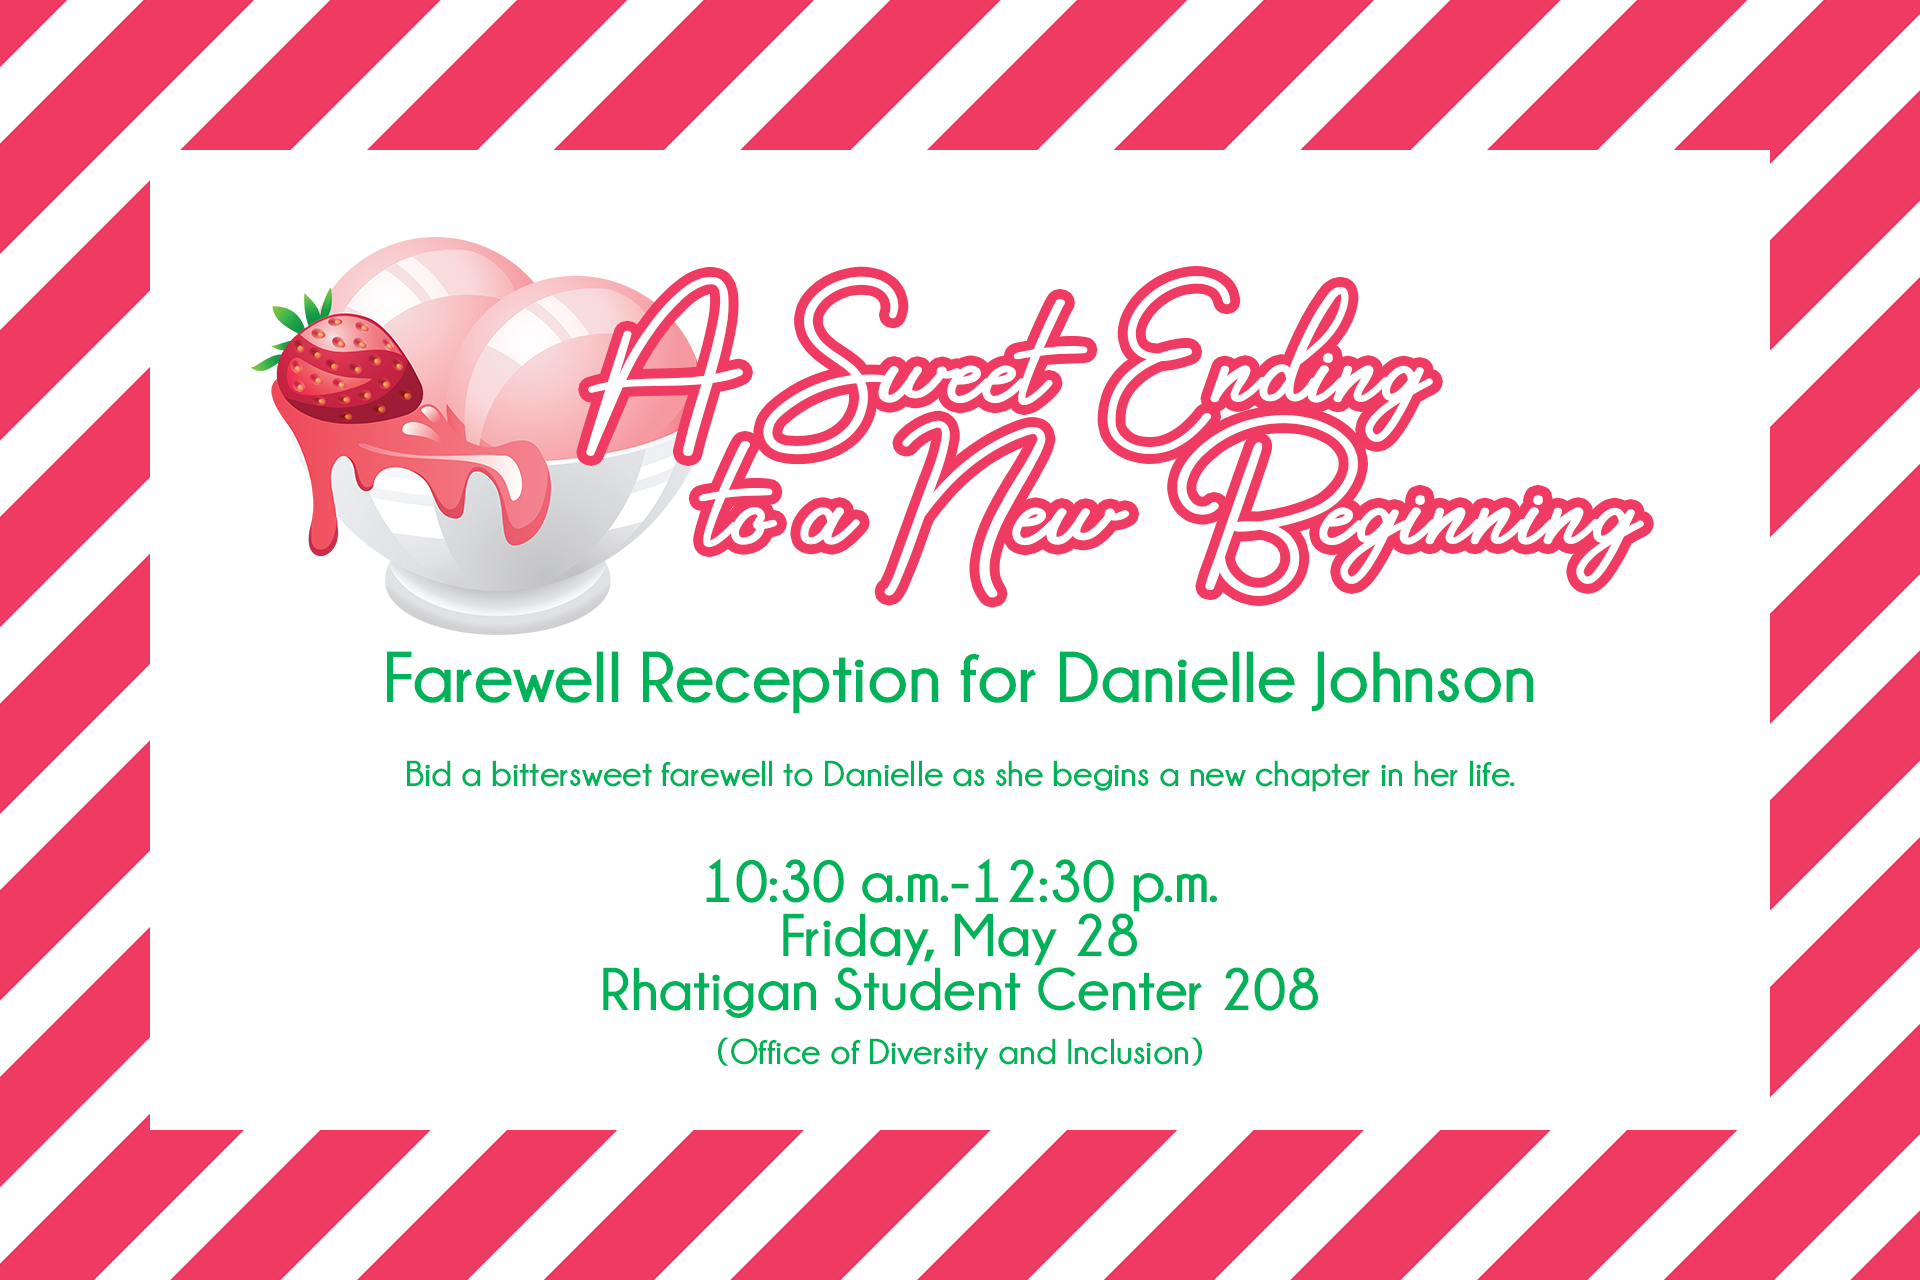 A Sweet Ending to a New Beginning Farewell Reception for Danielle Johnson / Bid a bittersweet farewell to Danielle as she begins a new chapter in her life. / 10:30 a.m.-12:30 p.m. Friday, May 28 Rhatigan Student Center 208 (Office of Diversity and Inclusion)